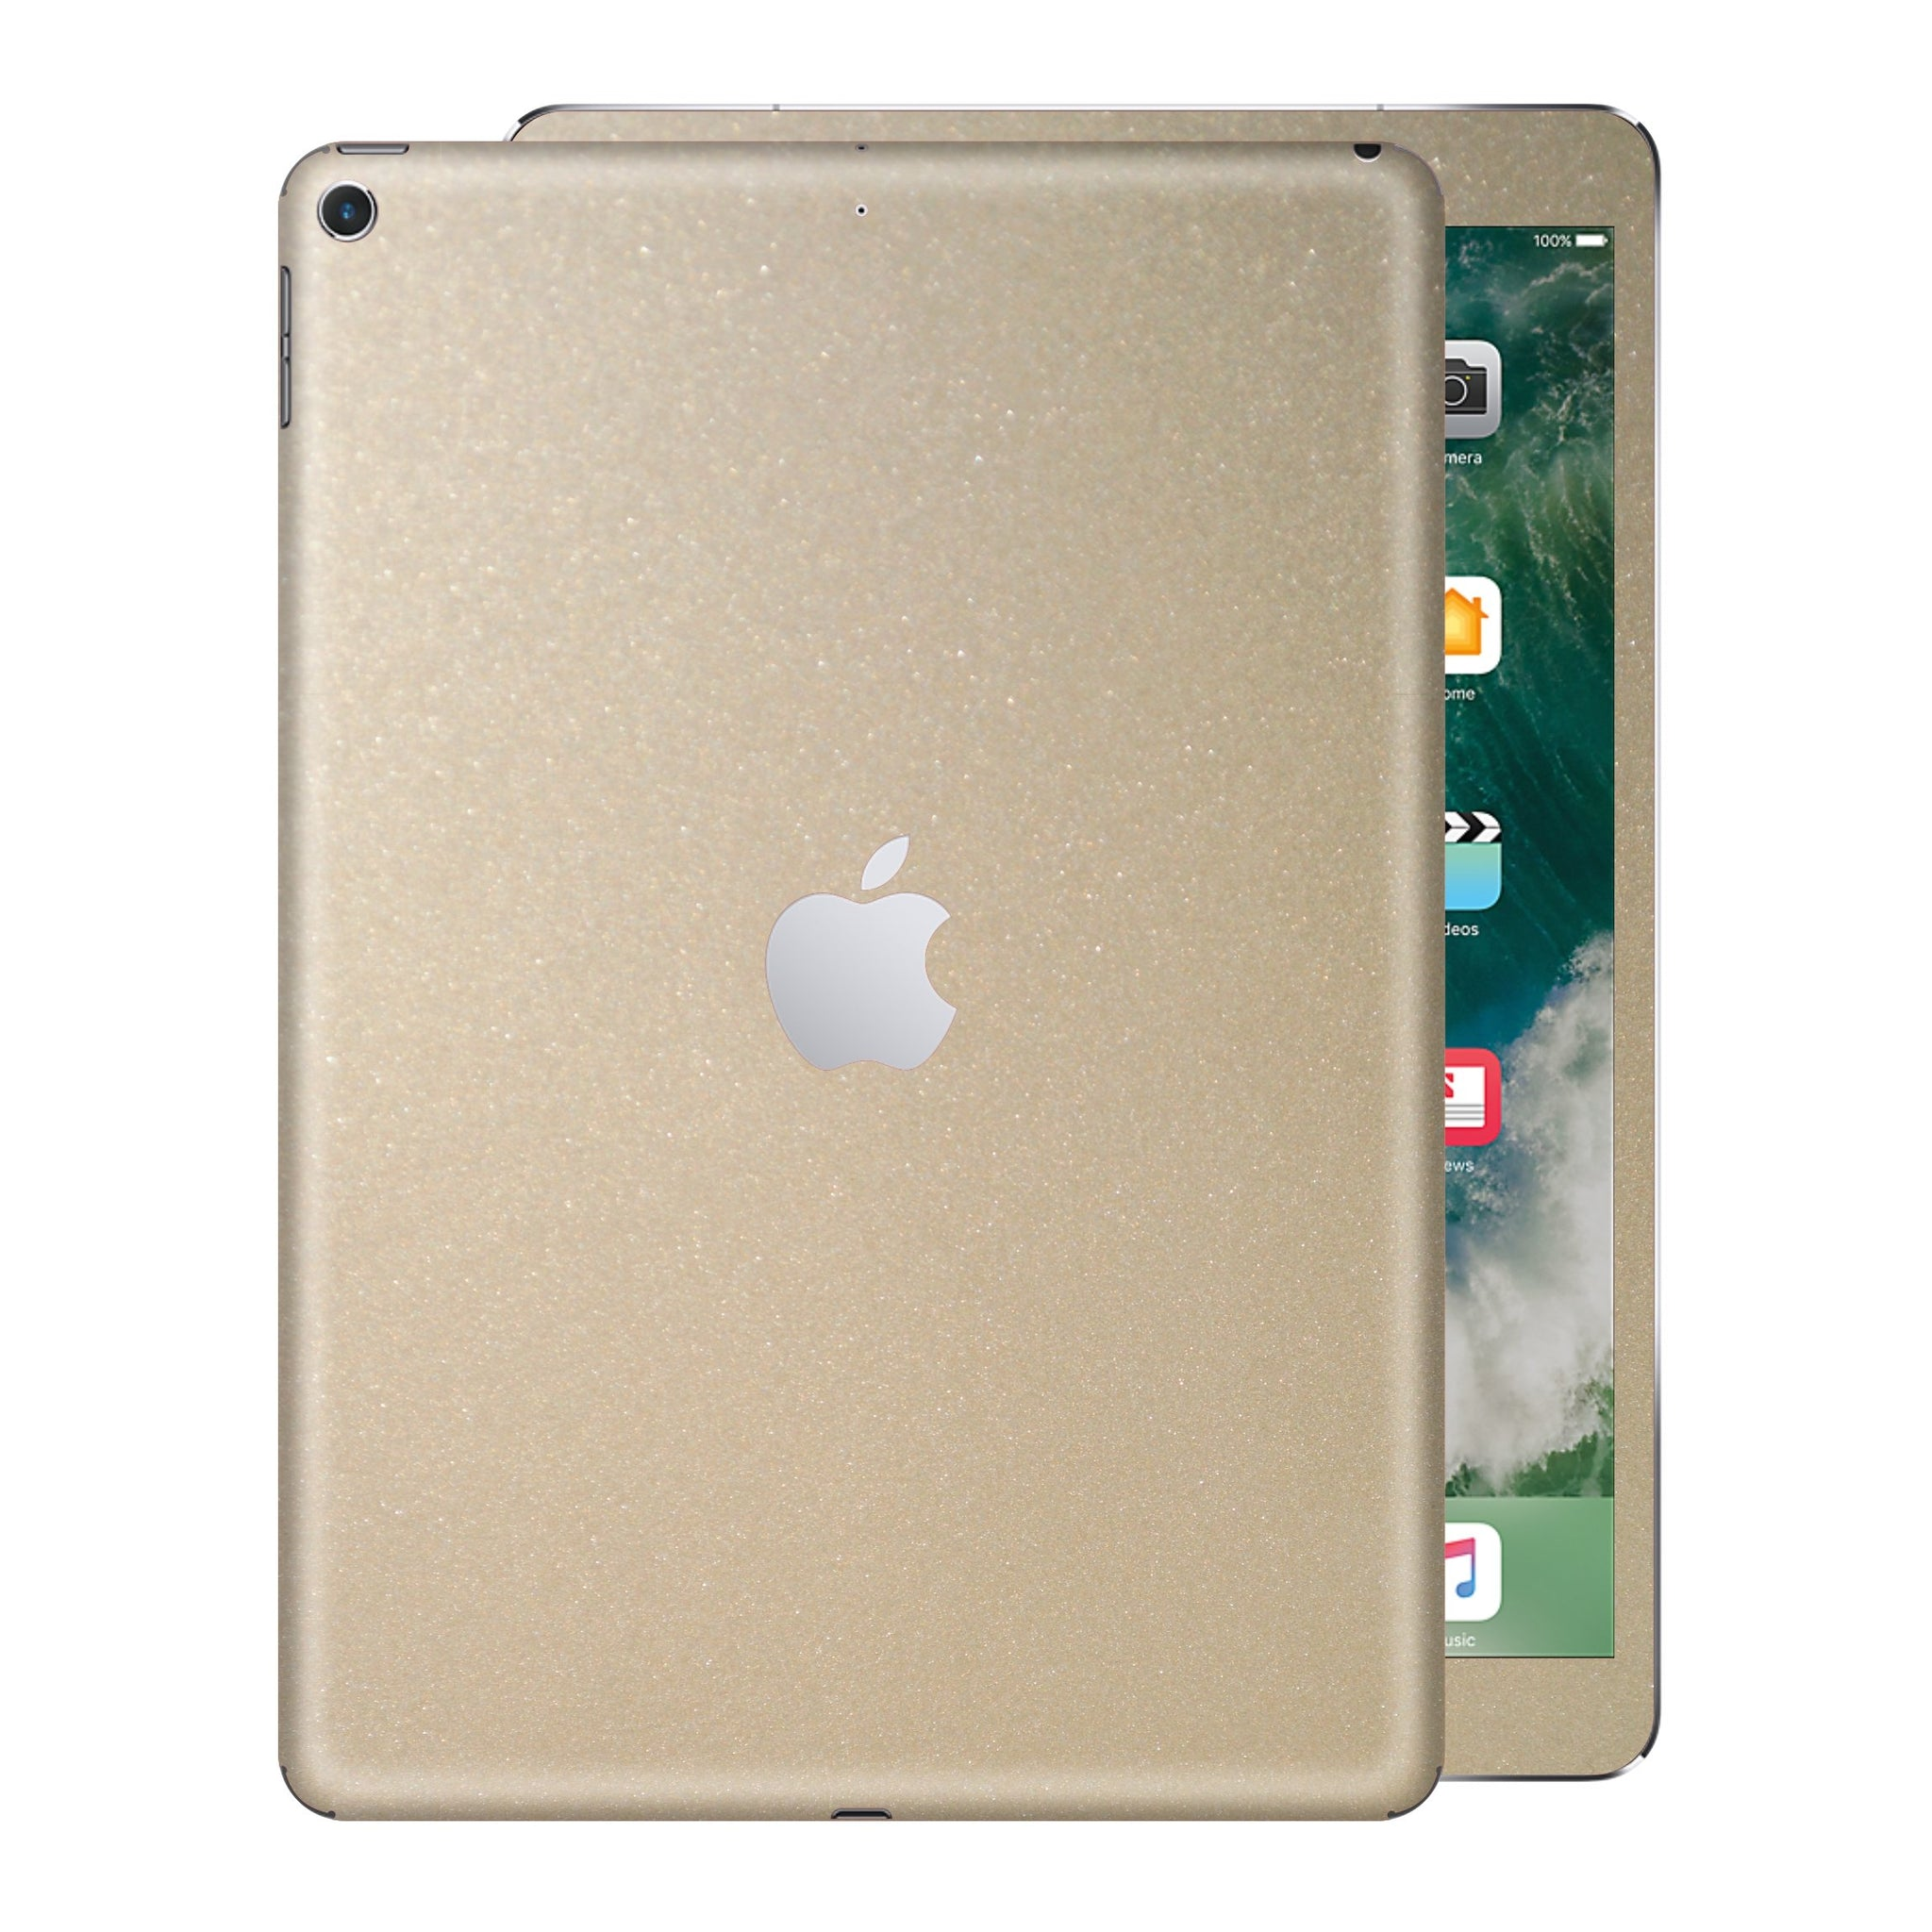 iPad 9.7 inch 2017 Glossy Champagne Gold Metallic Skin Wrap Sticker Decal Cover Protector by EasySkinz